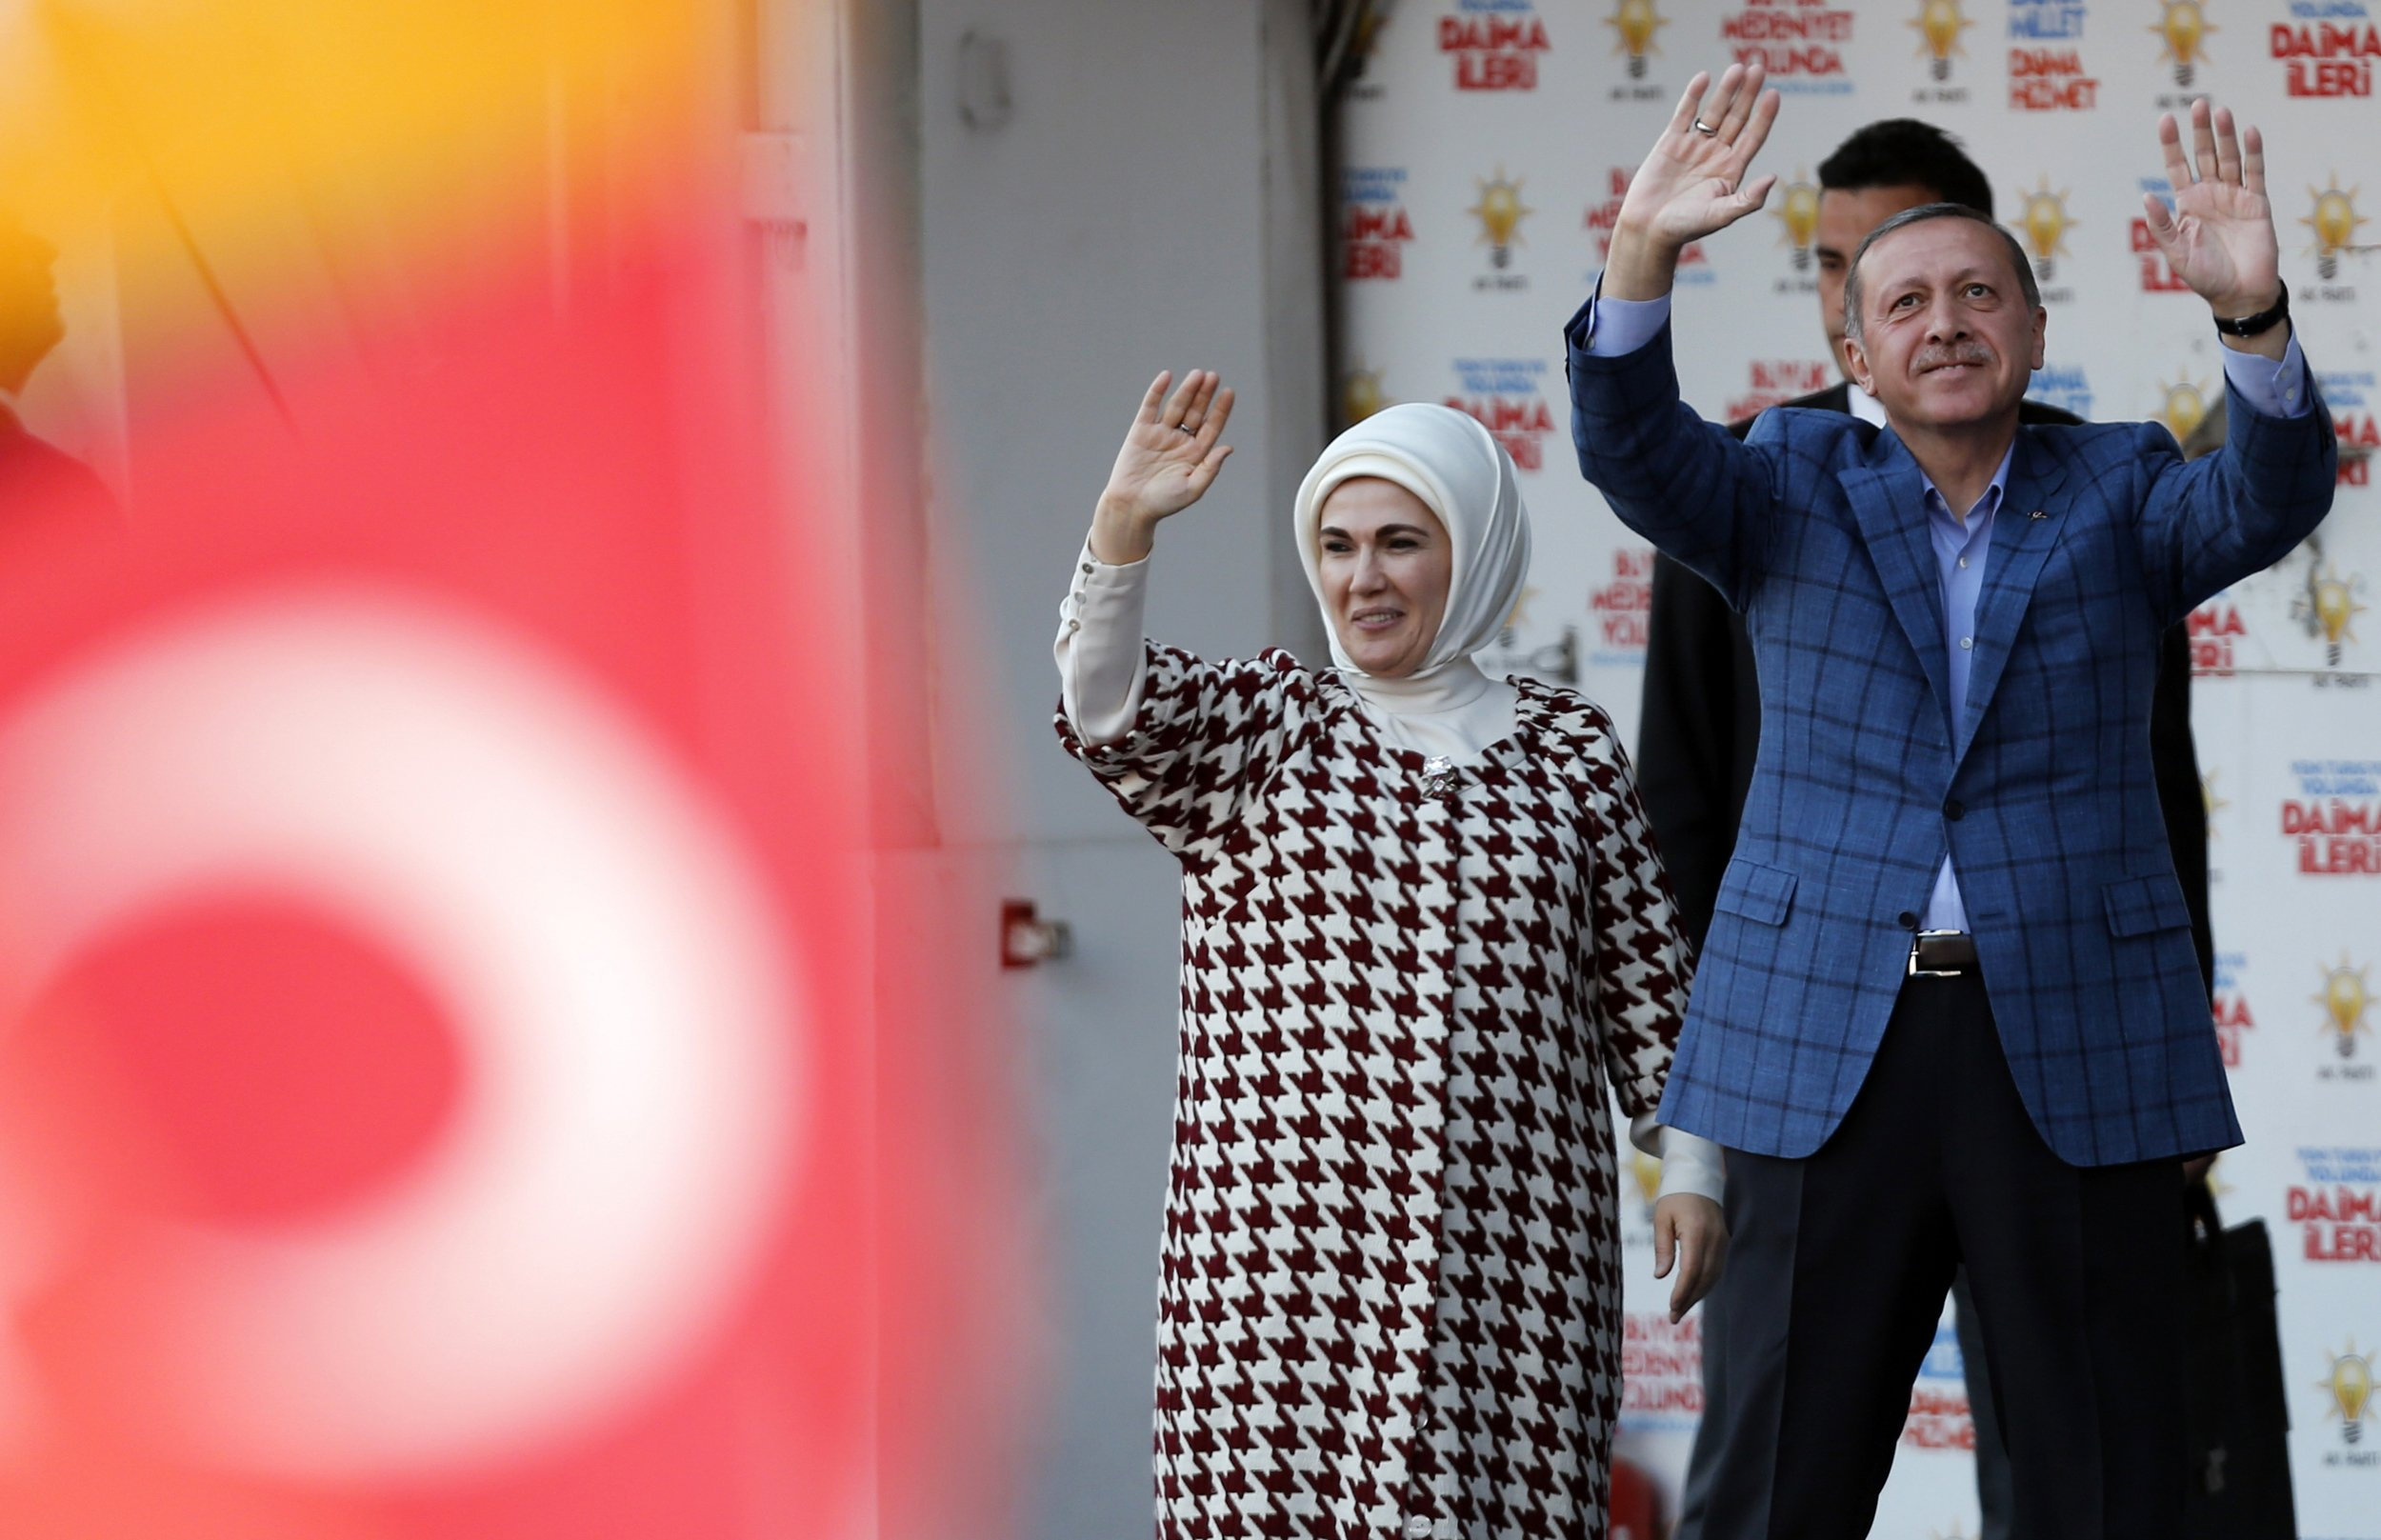 11_06_Erdogan_Press_01